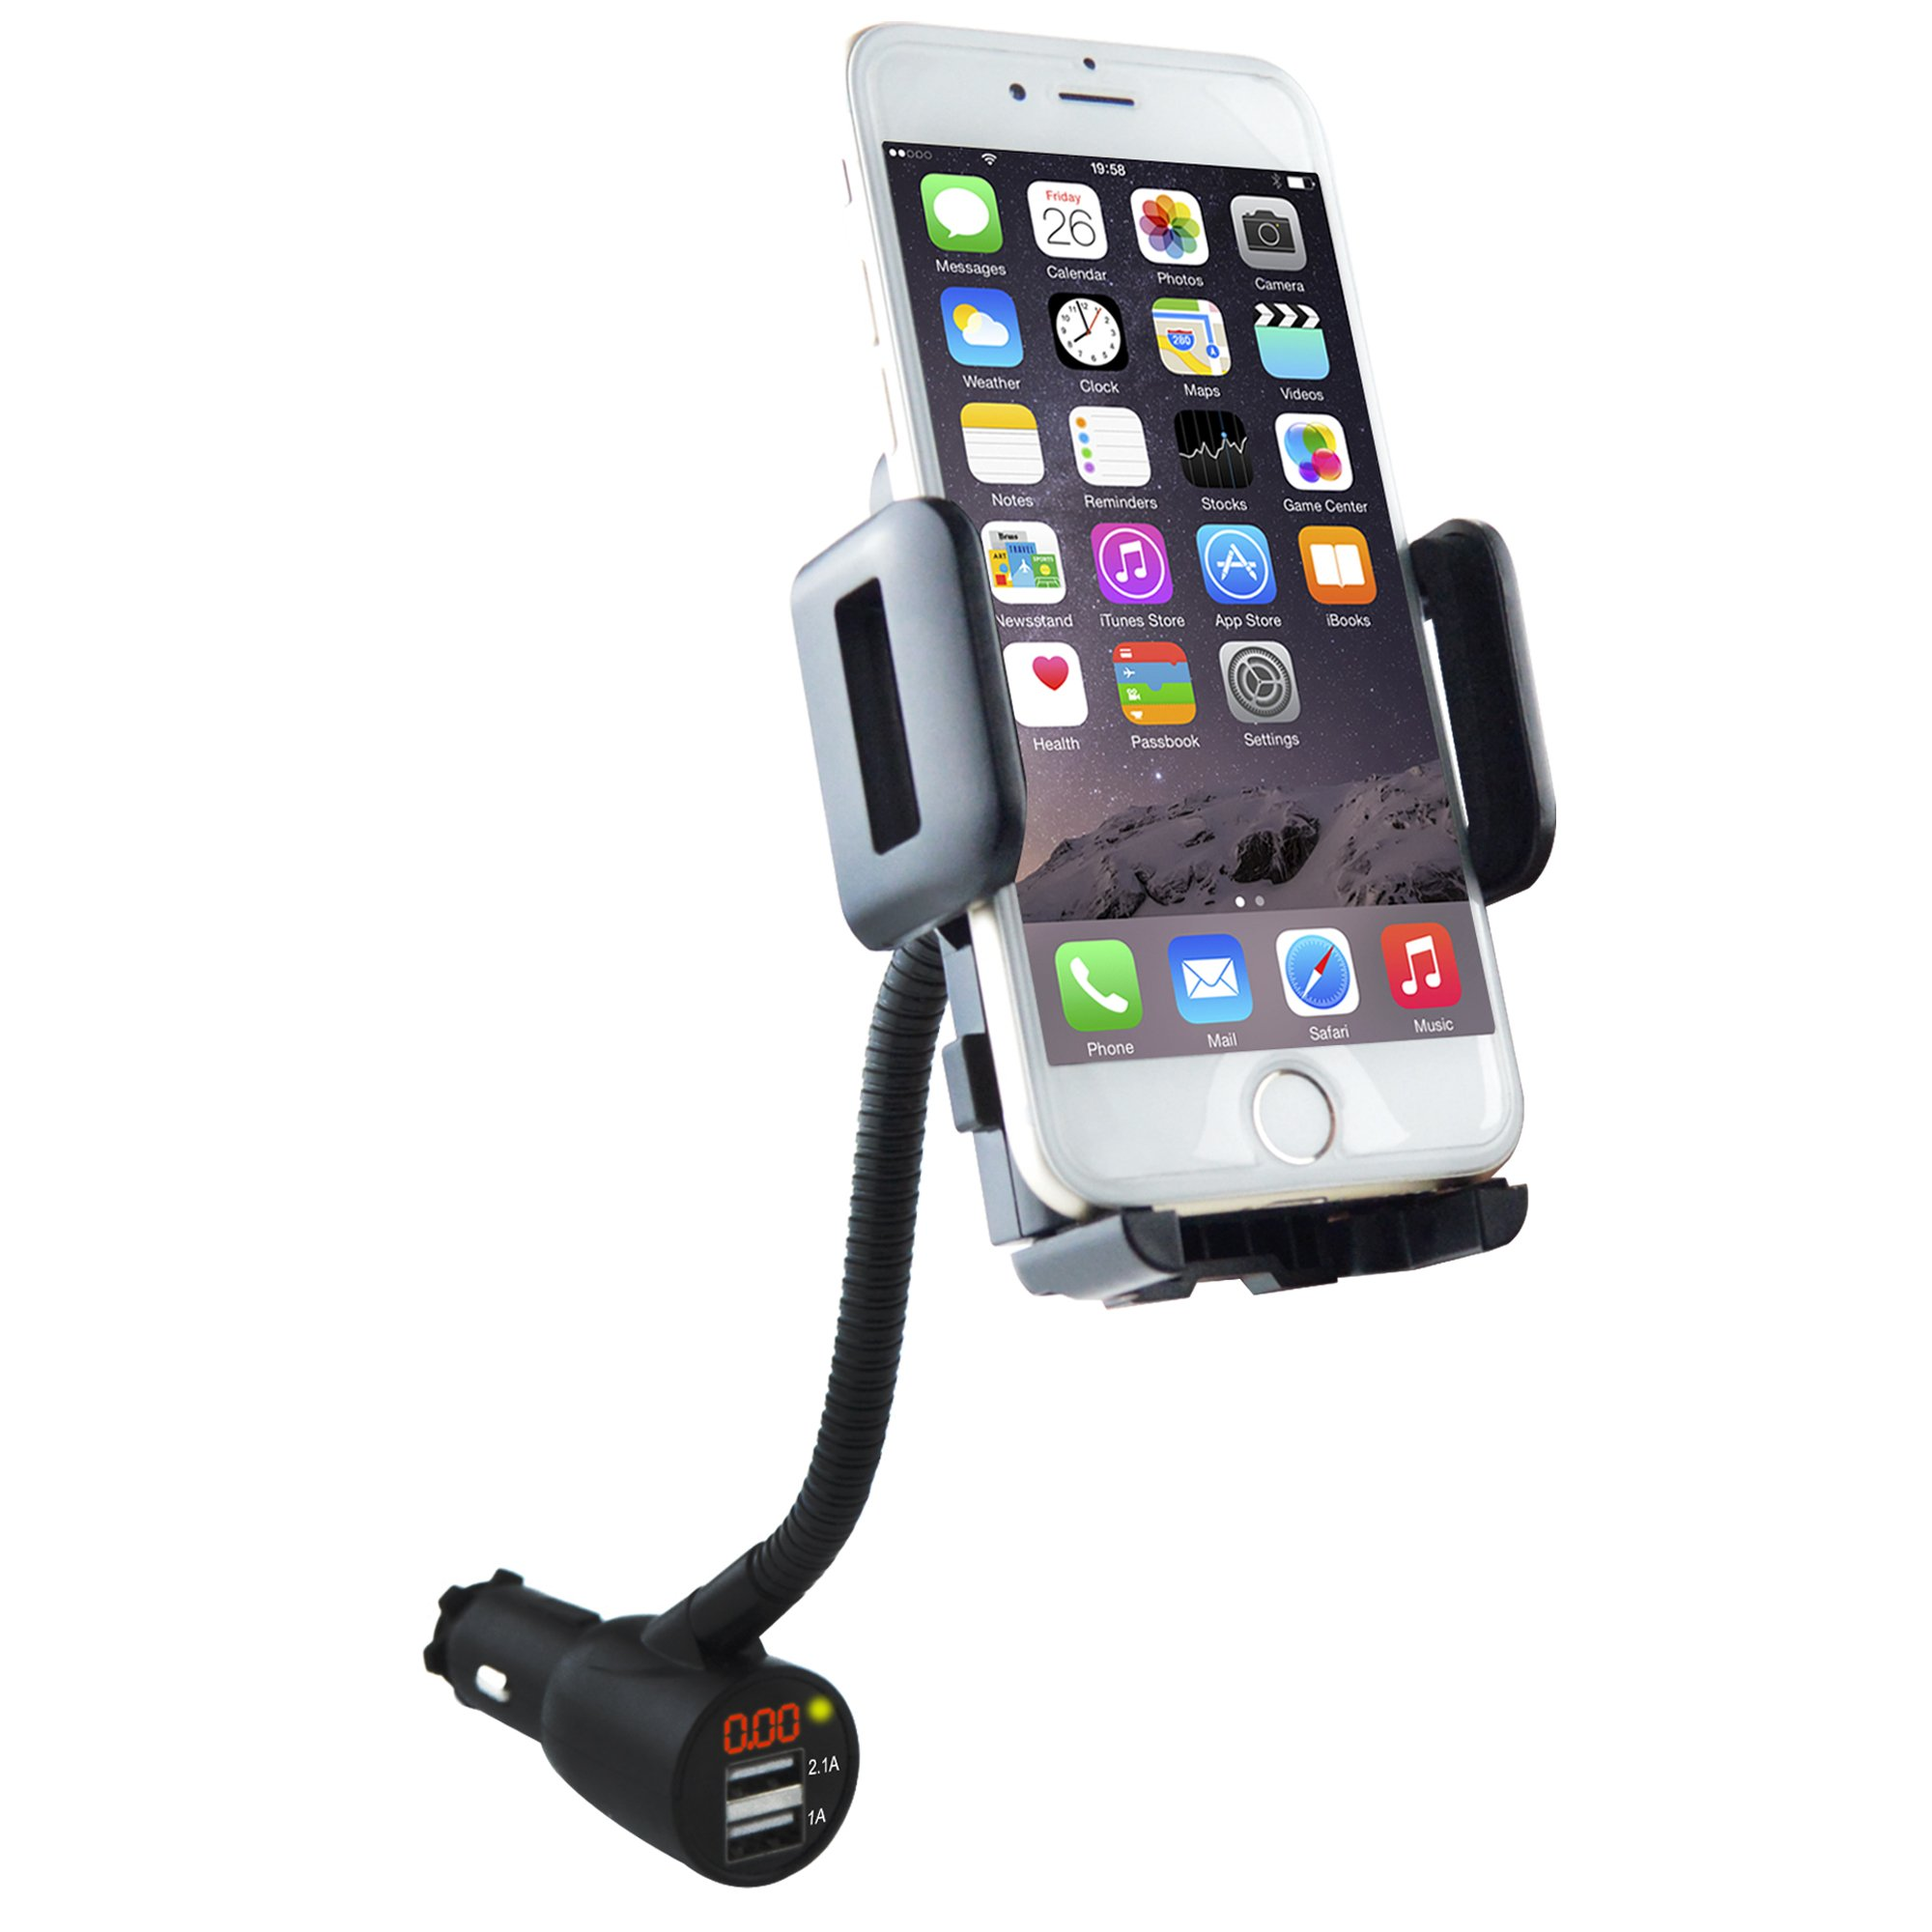 3-in-1 Cigarette Lighter Car Mount + Voltage Detector, SOAIY Car Mount Holder Cradle w/Dual USB 3.1A, Display Voltage Current Compatible with iPhoneXS XS Max XR X 8 7 6s 6 5s Samsung S8 S7 S6 S5 by SOAIY